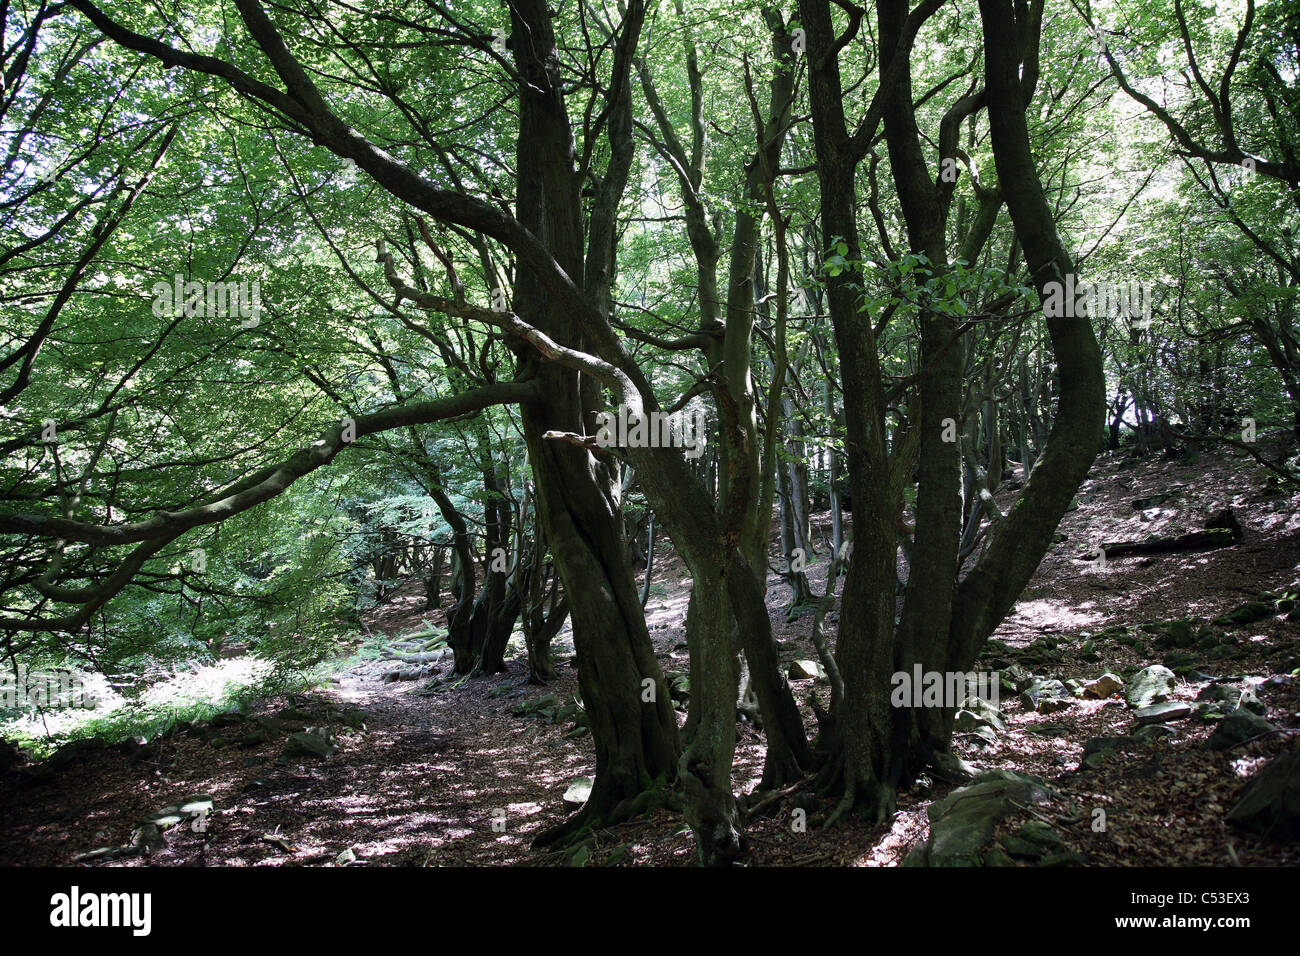 Ancient beech woodland around Blaenavon, South Wales. - Stock Image